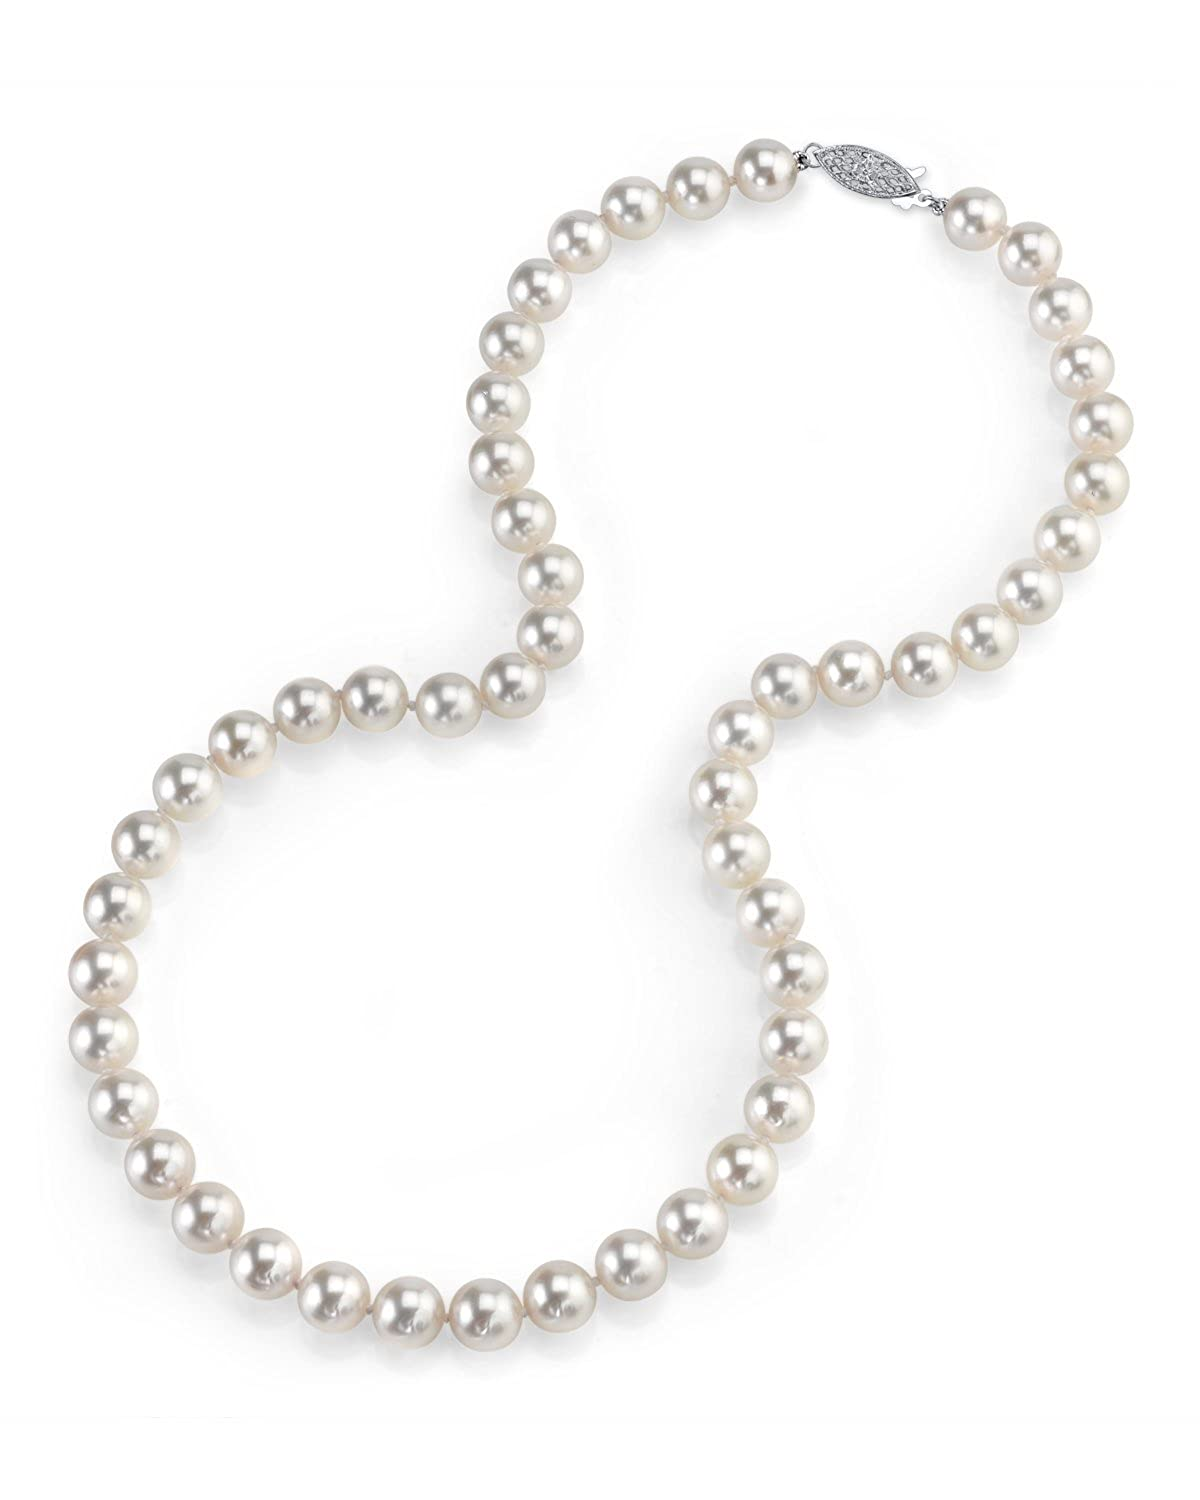 THE PEARL SOURCE 14K Gold 7.5-8.0mm Hanadama Quality Round Genuine White Japanese Akoya Saltwater Cultured Pearl Necklace in 17 Princess Length for Women